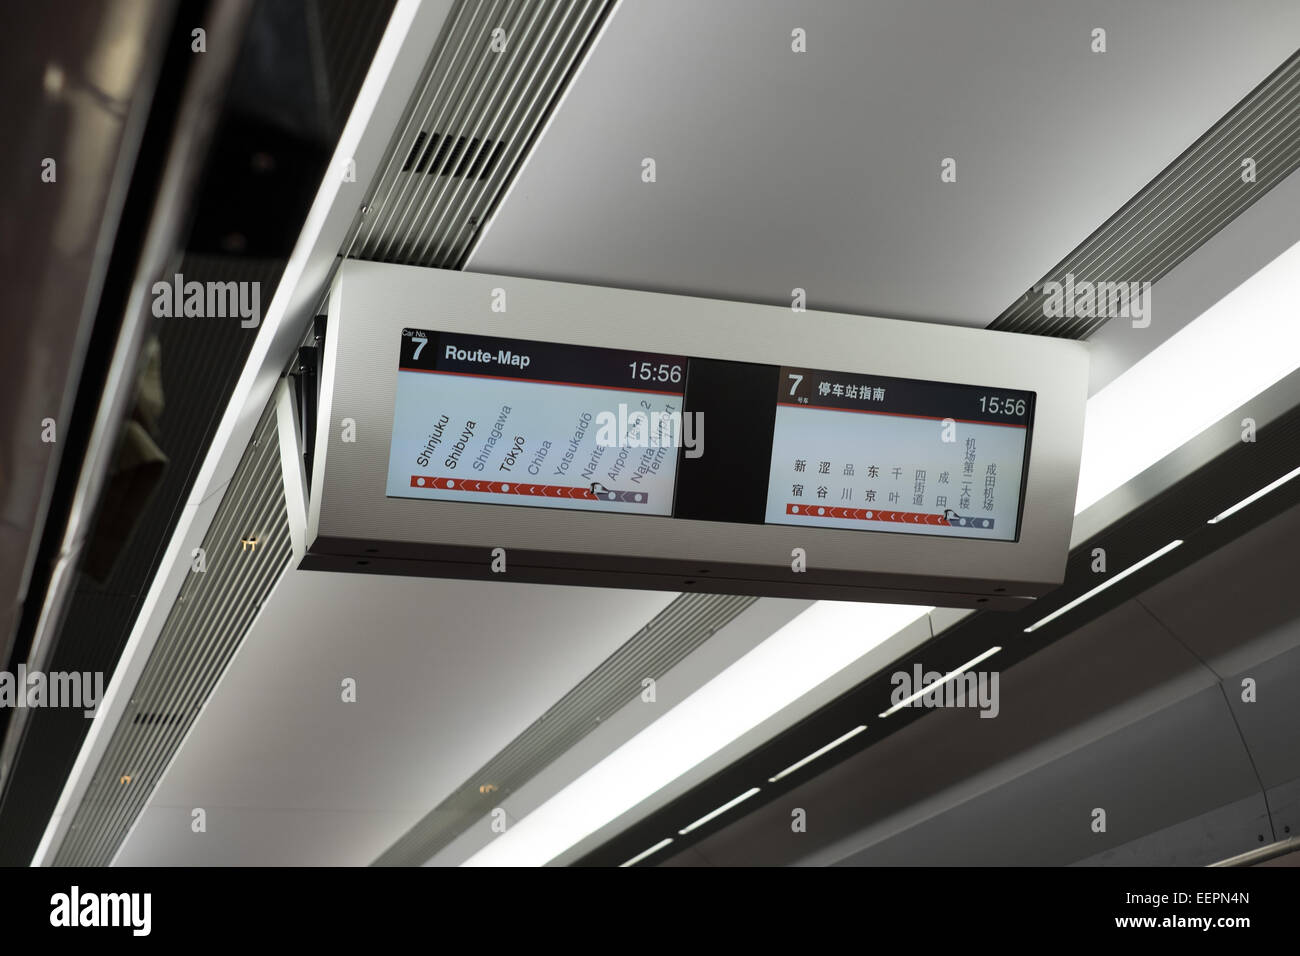 Map and station display on the NEX train from Japan's Narita International airport (NRT) and downtown Tokyo. - Stock Image